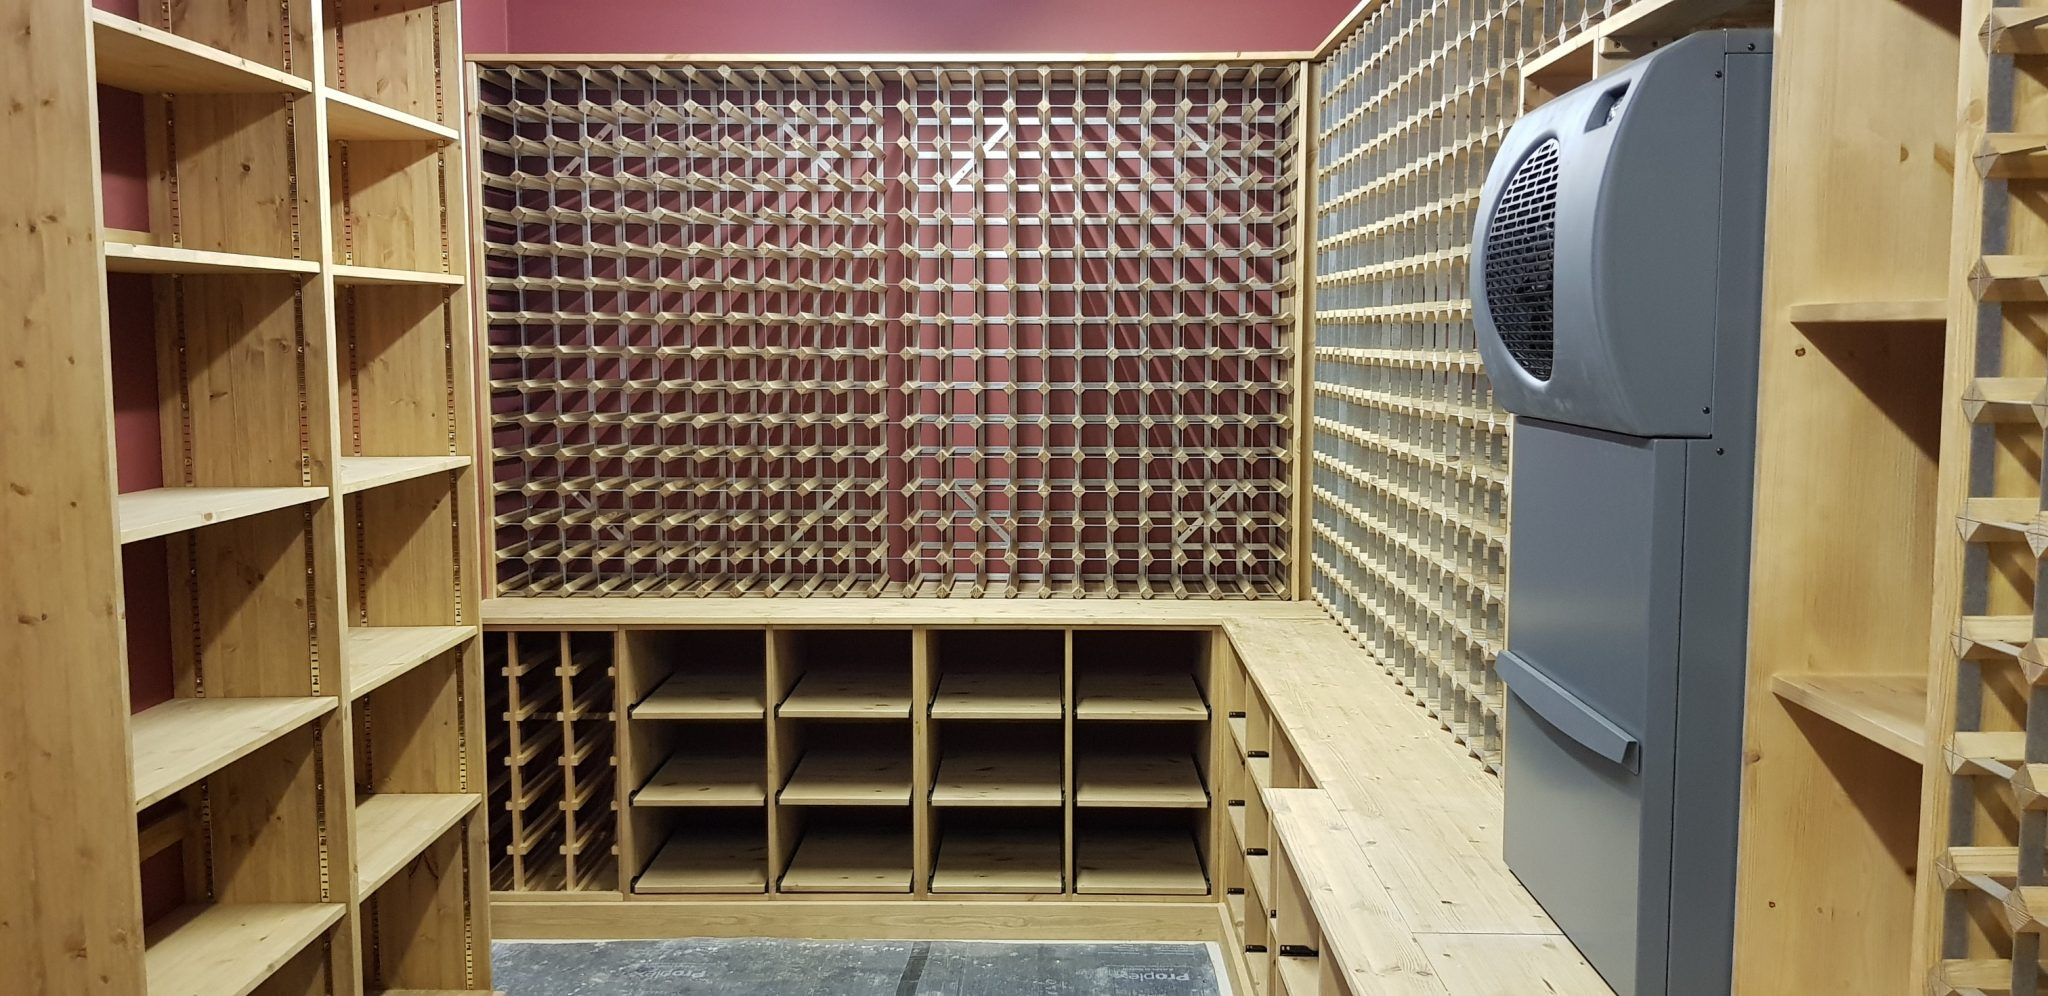 Adapting your wine storage to your living environment